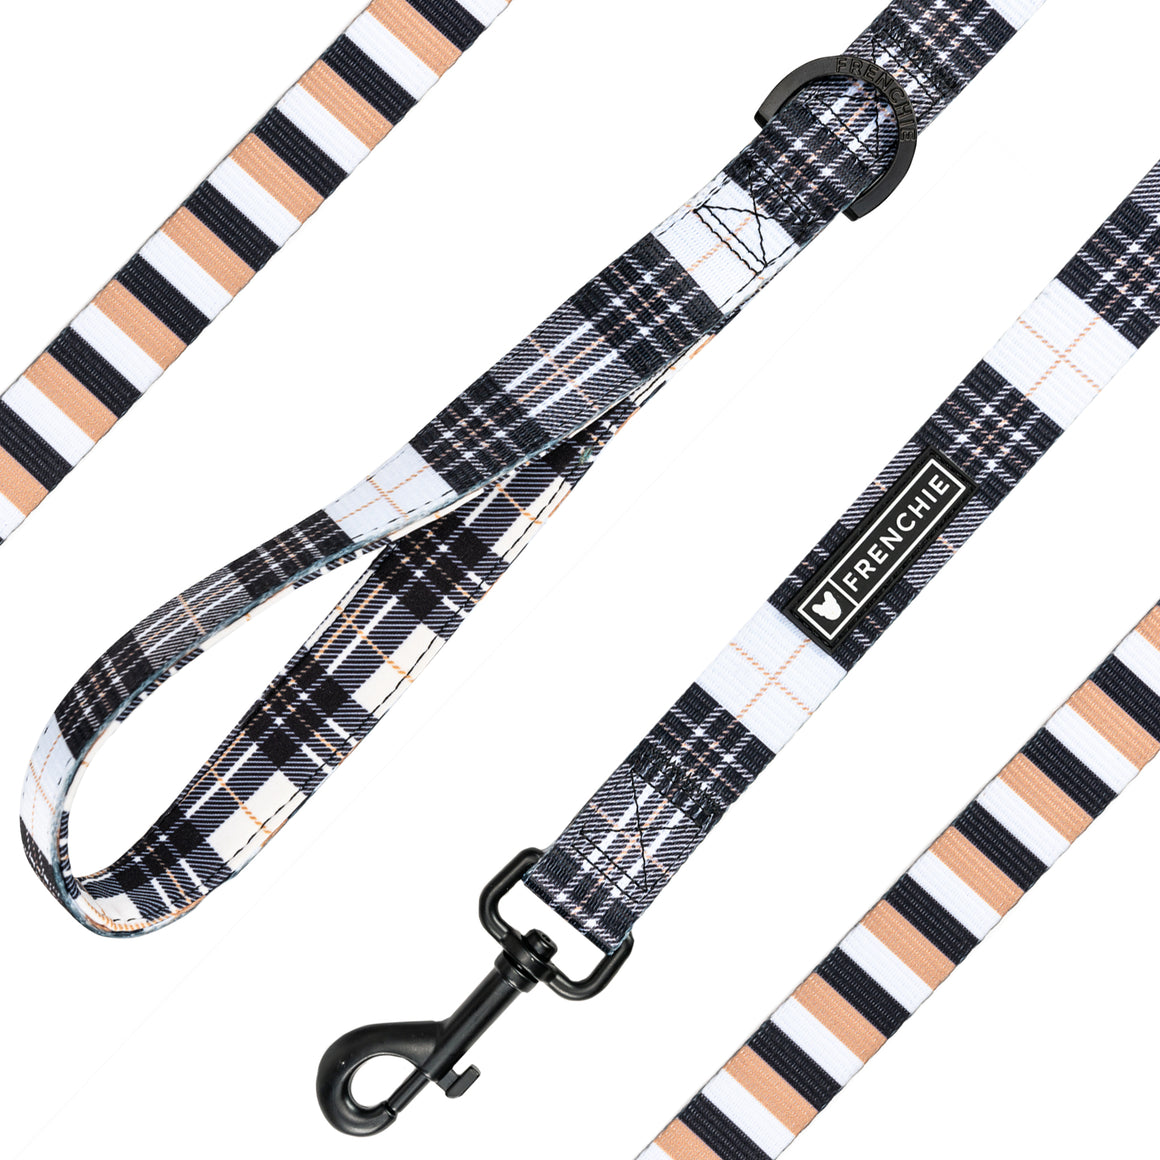 Frenchie Comfort Leash - White Hunter Plaid - Frenchie Bulldog - Shop Harnesses for French Bulldogs - Shop French Bulldog Harness - Harnesses for Pugs